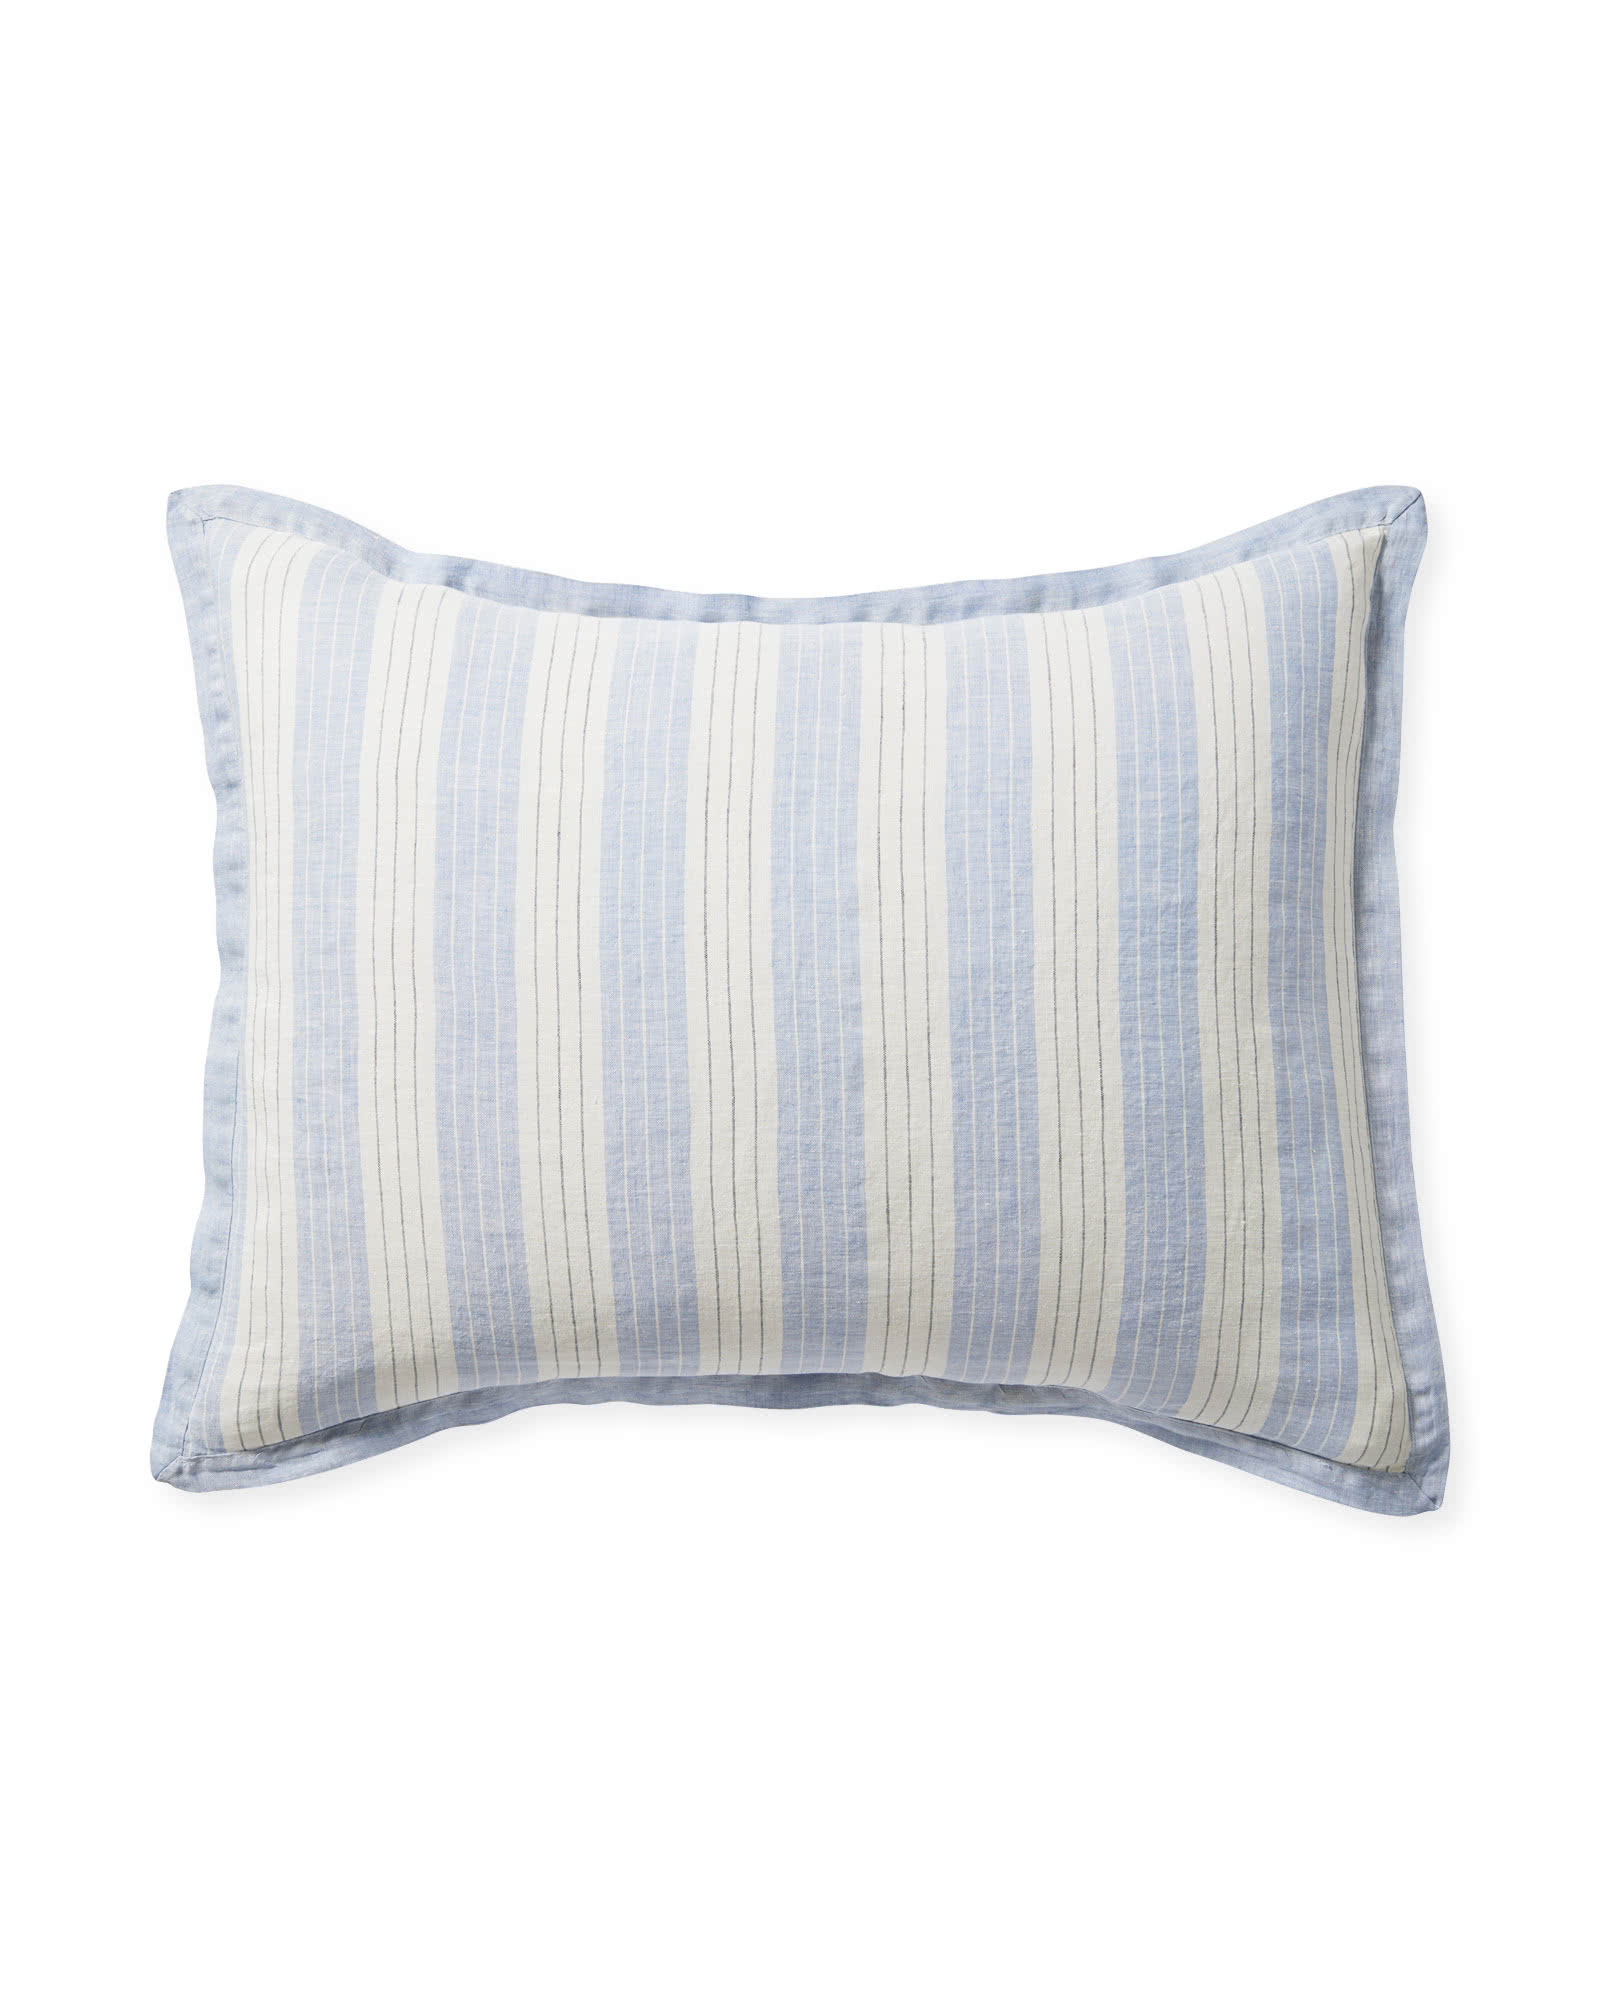 Porto Linen Shams, Blue Chambray